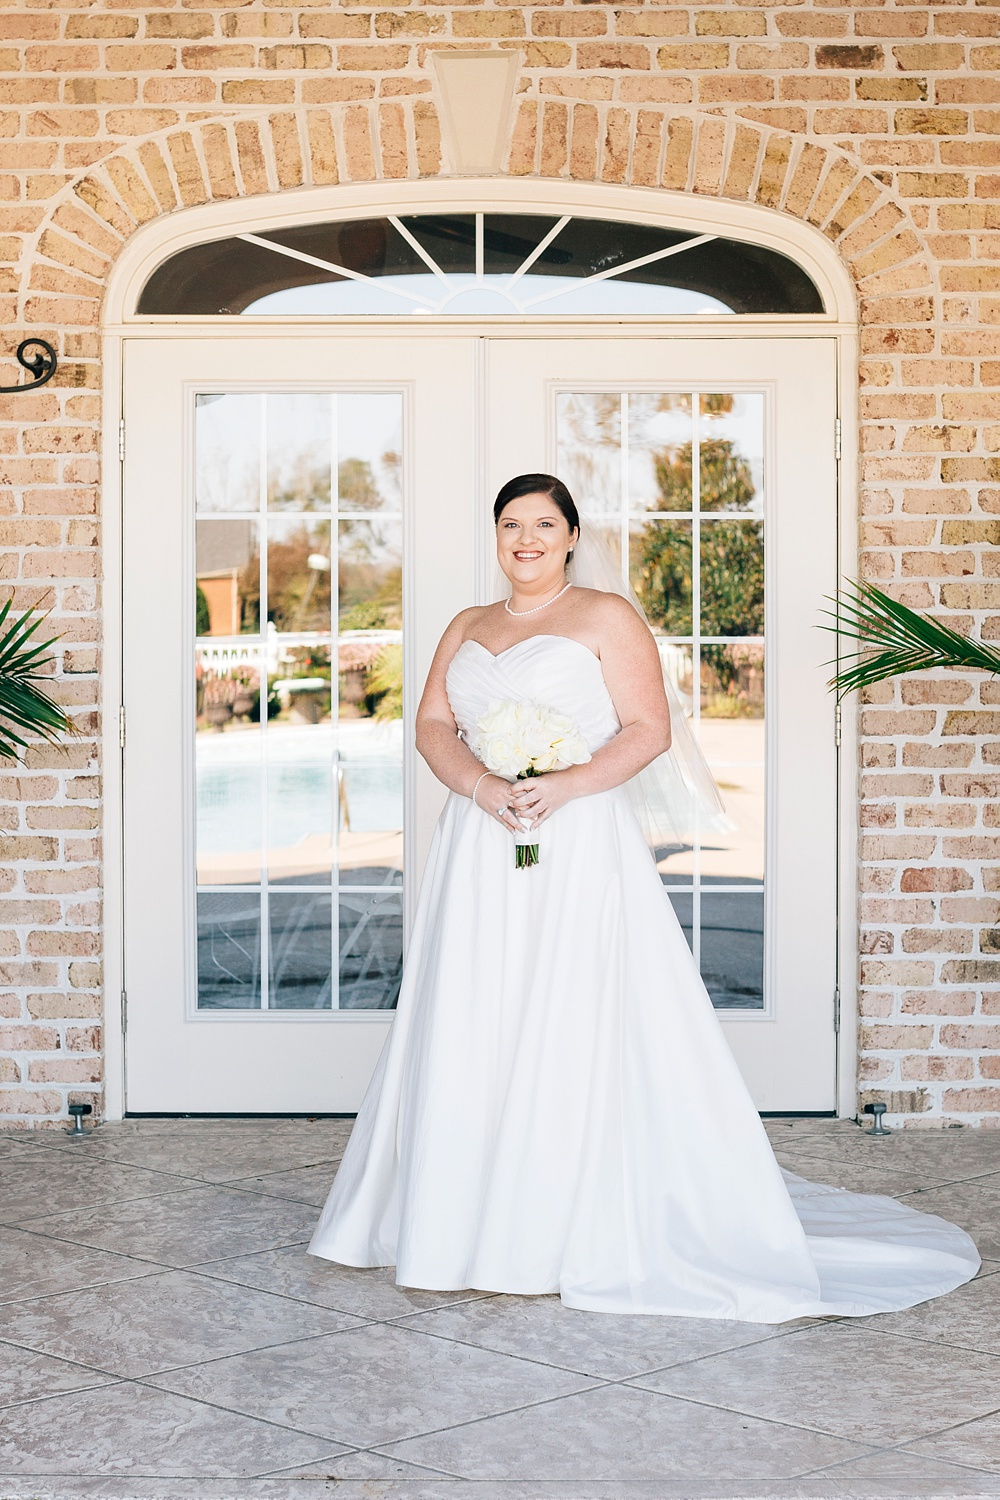 bridal portrait at the brock family pool house by rachael bowman photography